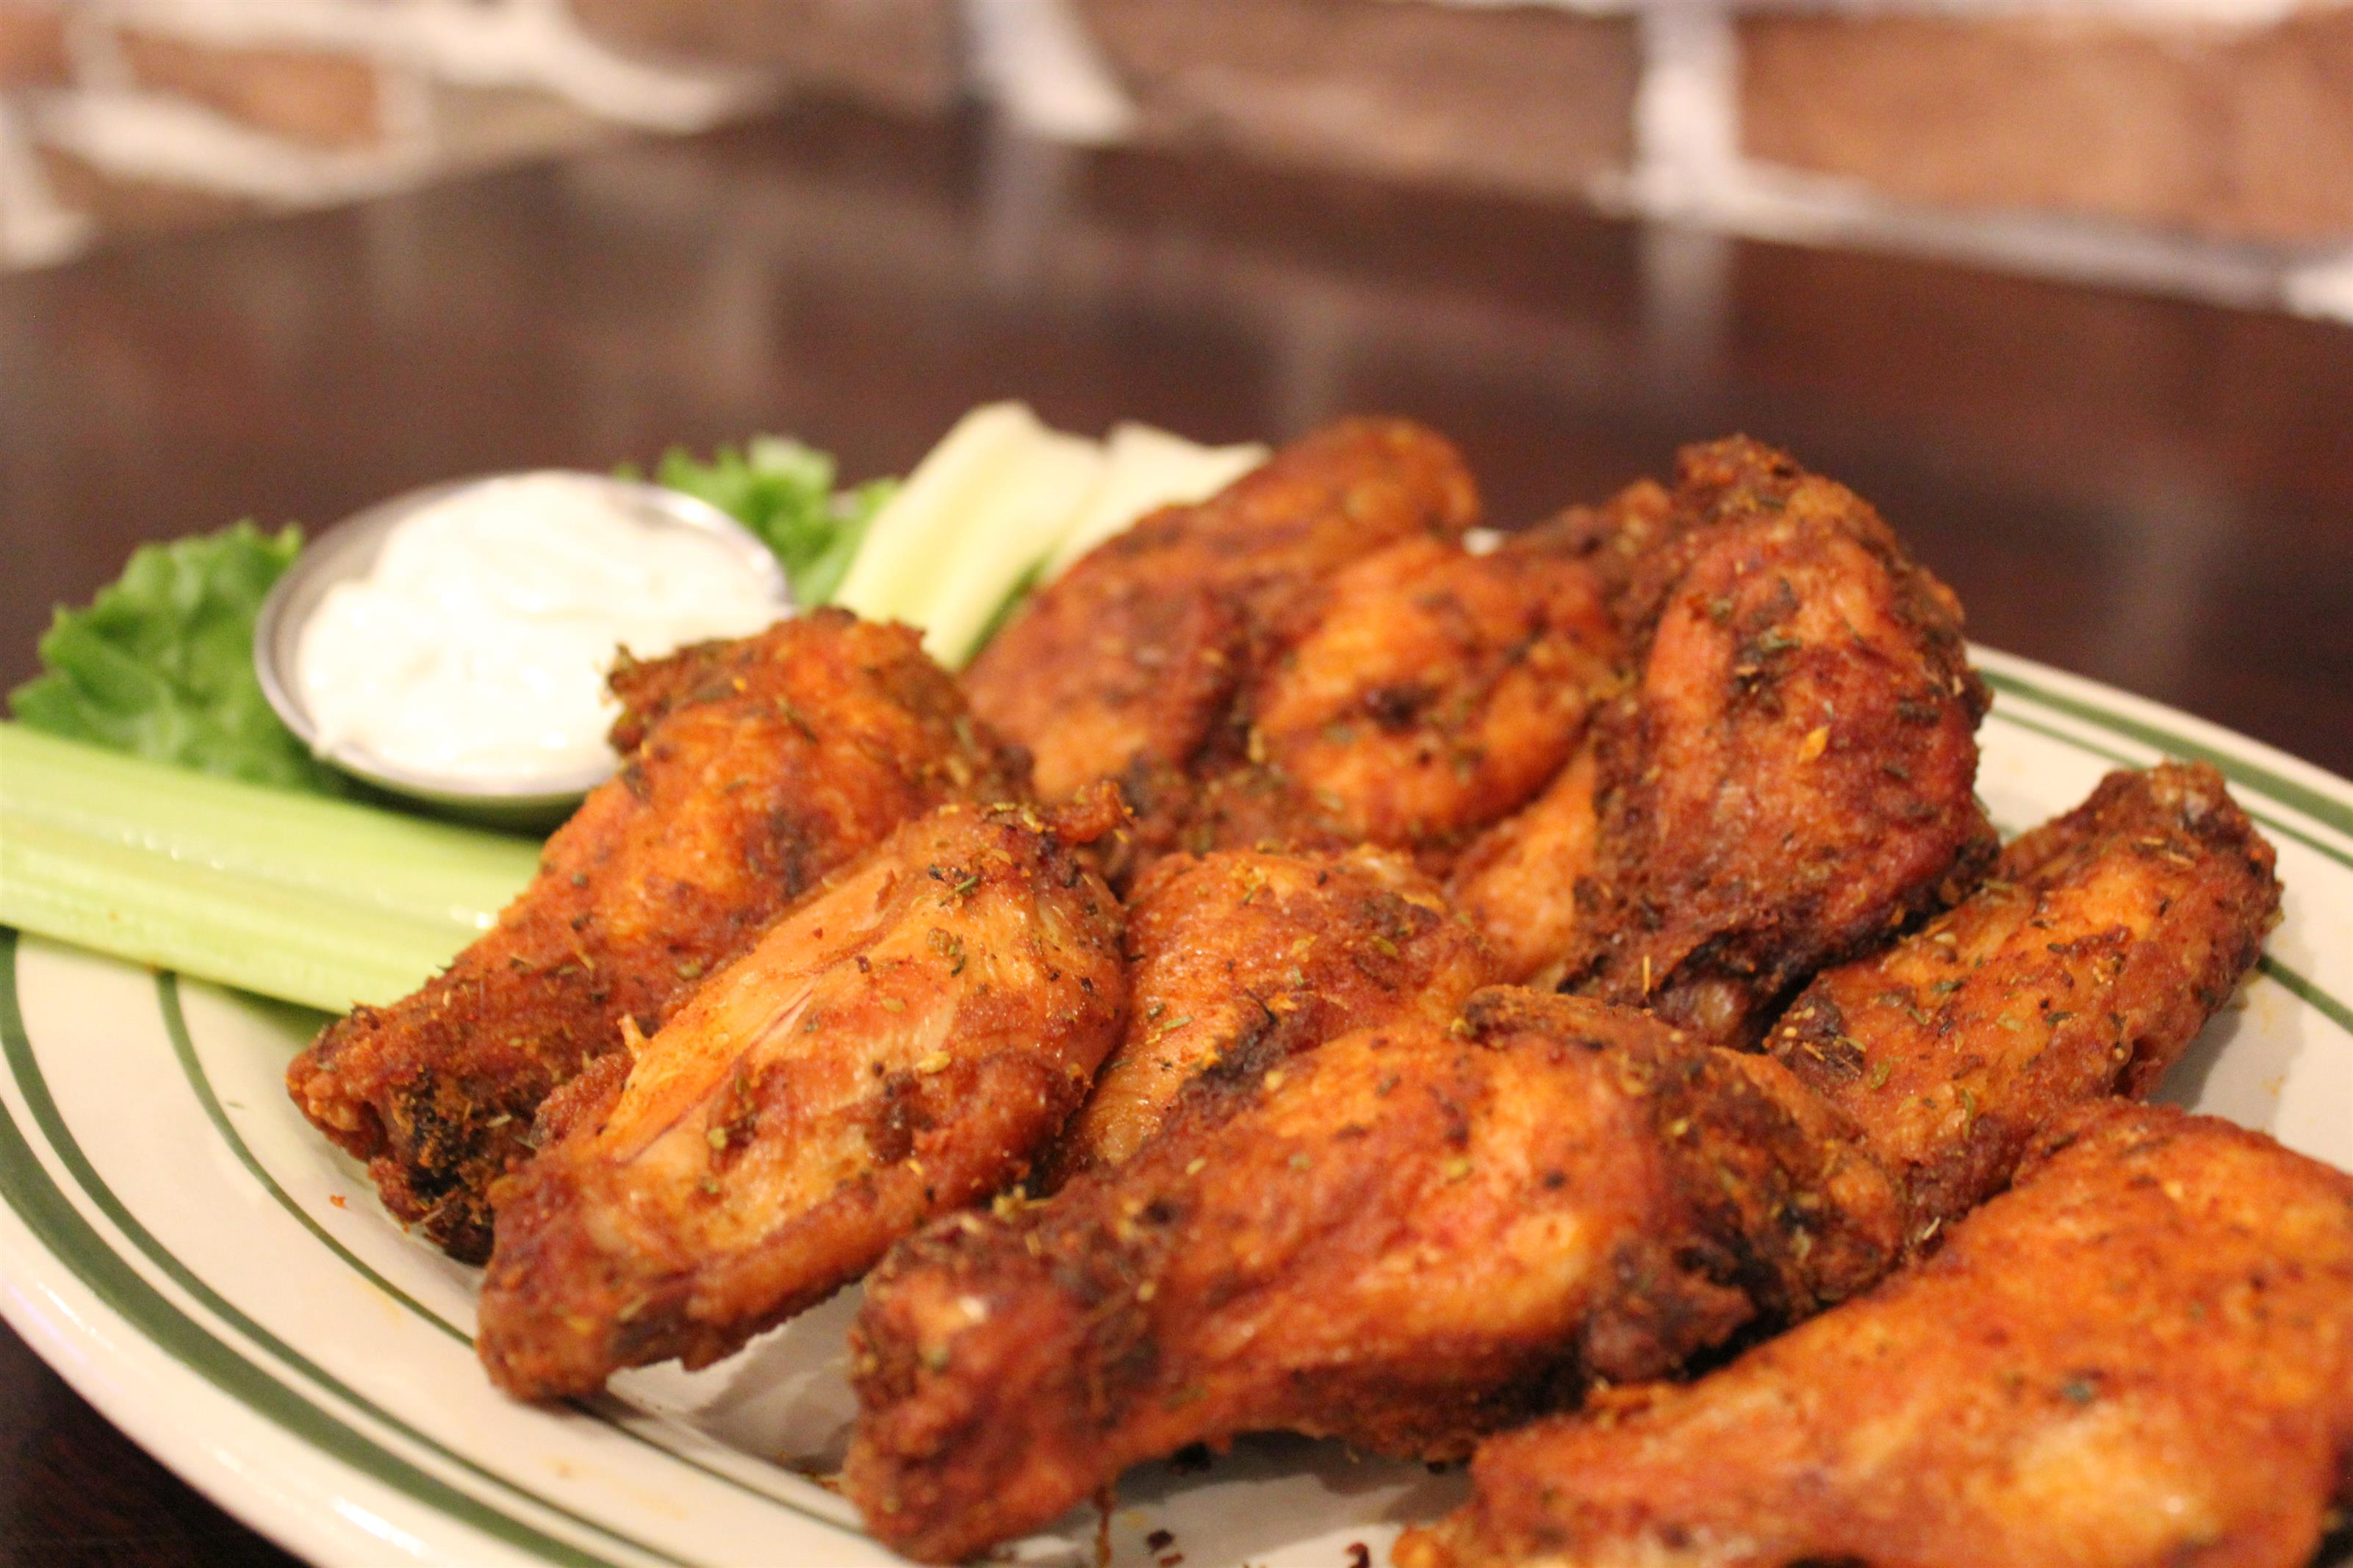 Ten fresh jumbo wings with ranch and celery